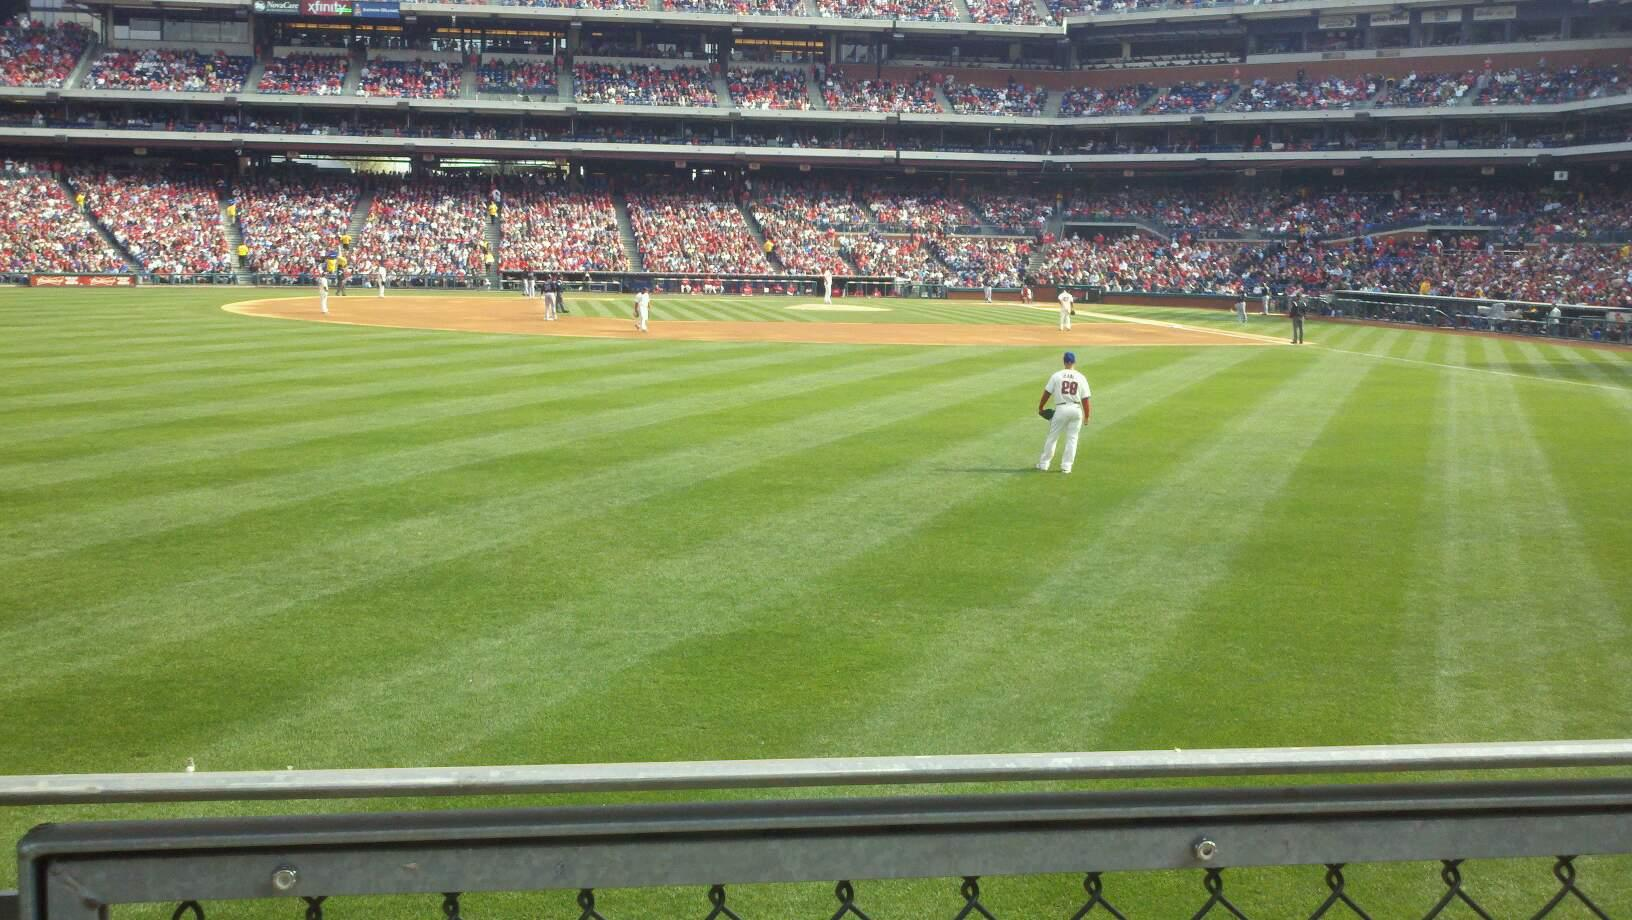 Citizens Bank Park Section 143 Row 1 Seat 18